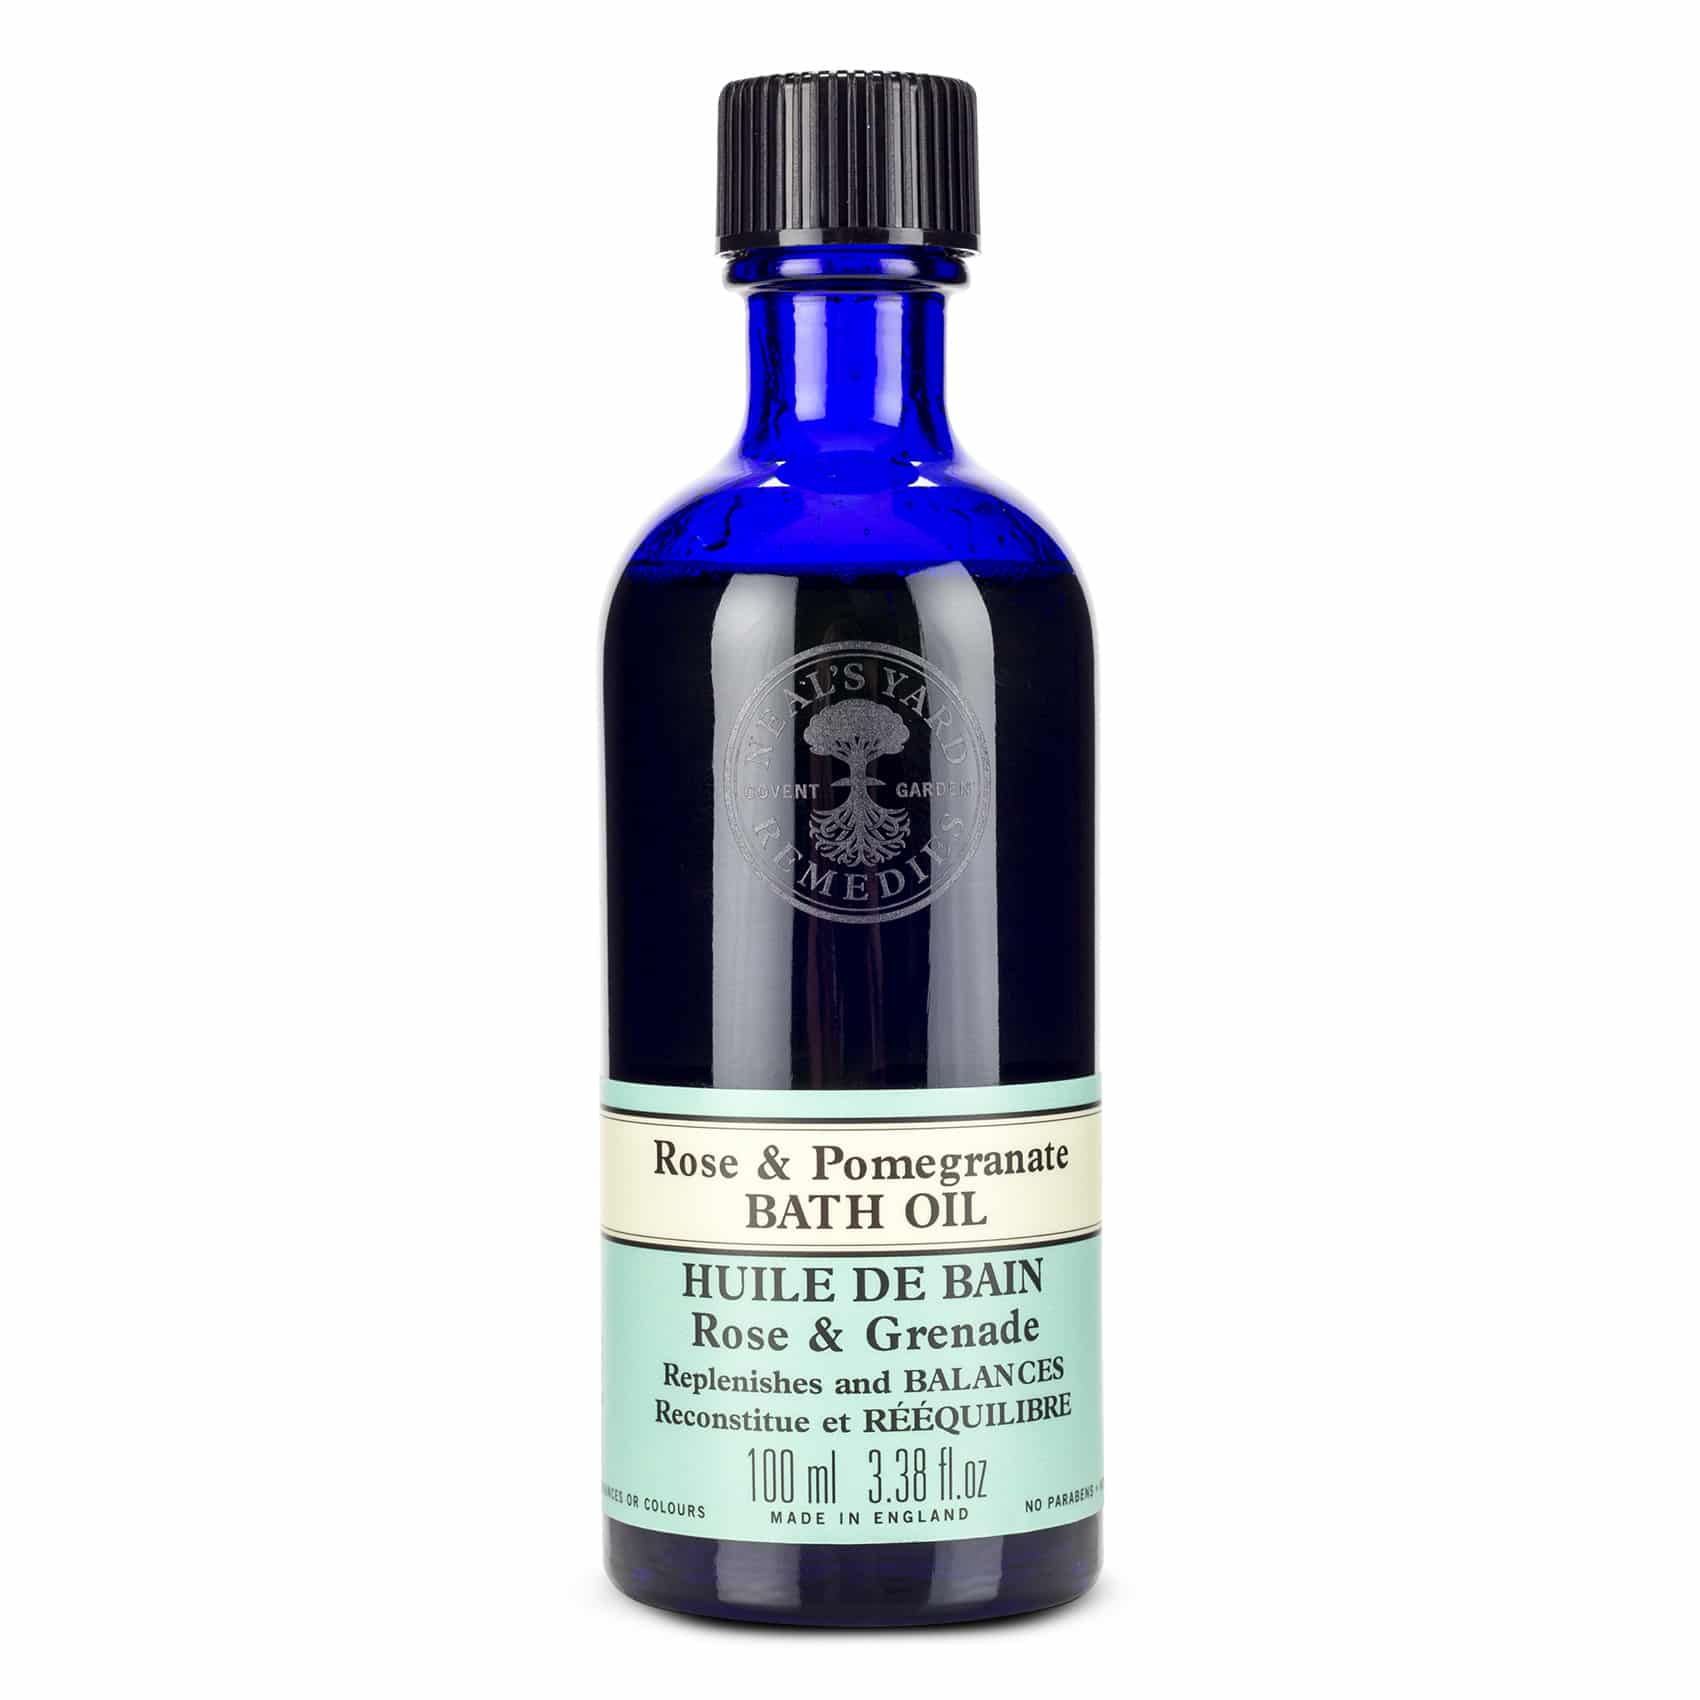 Neal's Yard Remedies Rose and Pomegranate Bath Oil 100ml